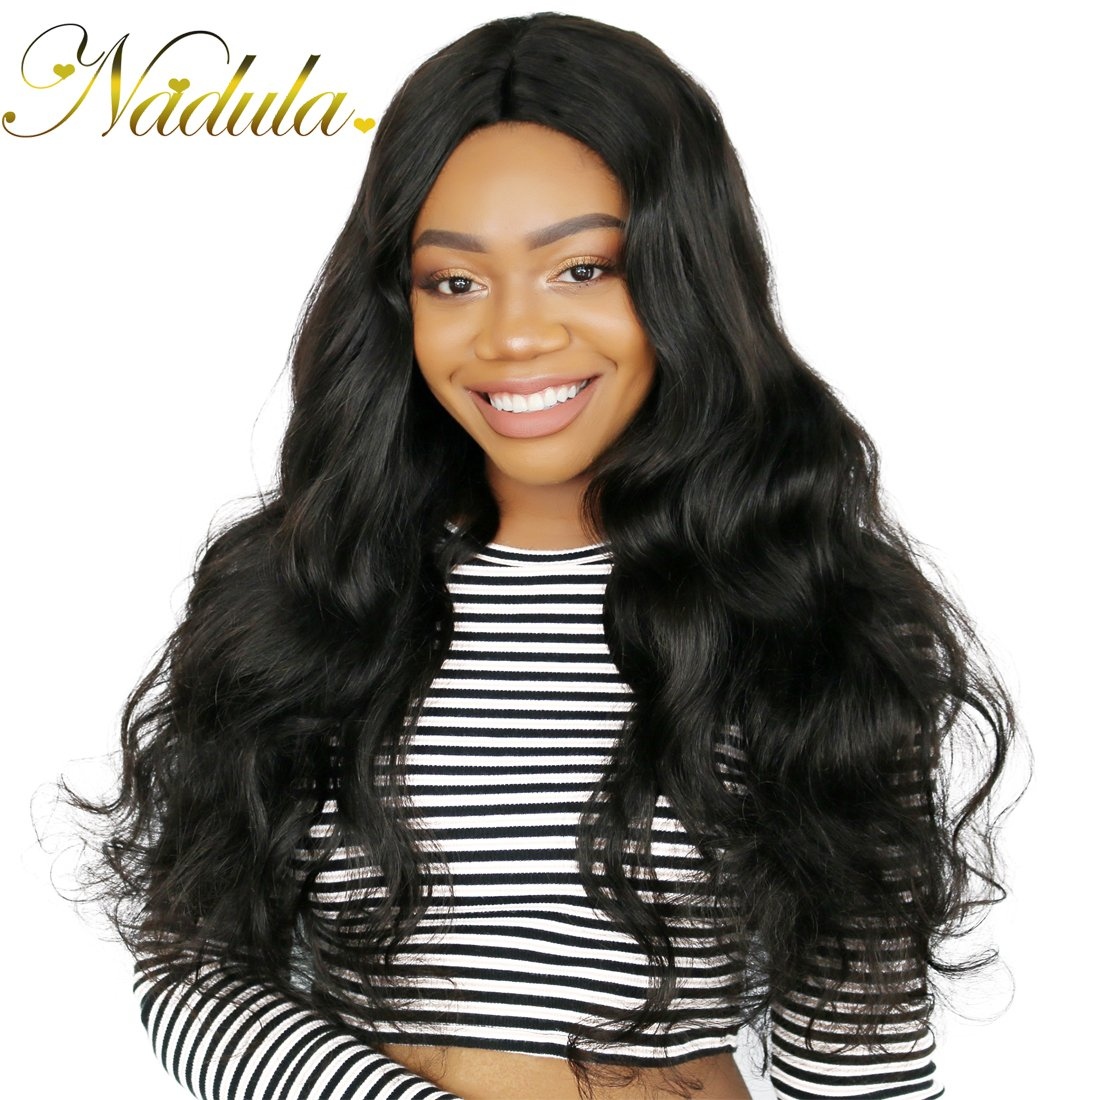 Nadula Hair 7a Best Quality Brazilian Body Wave Virgin Hair Extensions 3 Bundles 18 20 22 Brazilian Wavy Unprocessed Human Hair Weave Natural Color by Nadula (Image #7)